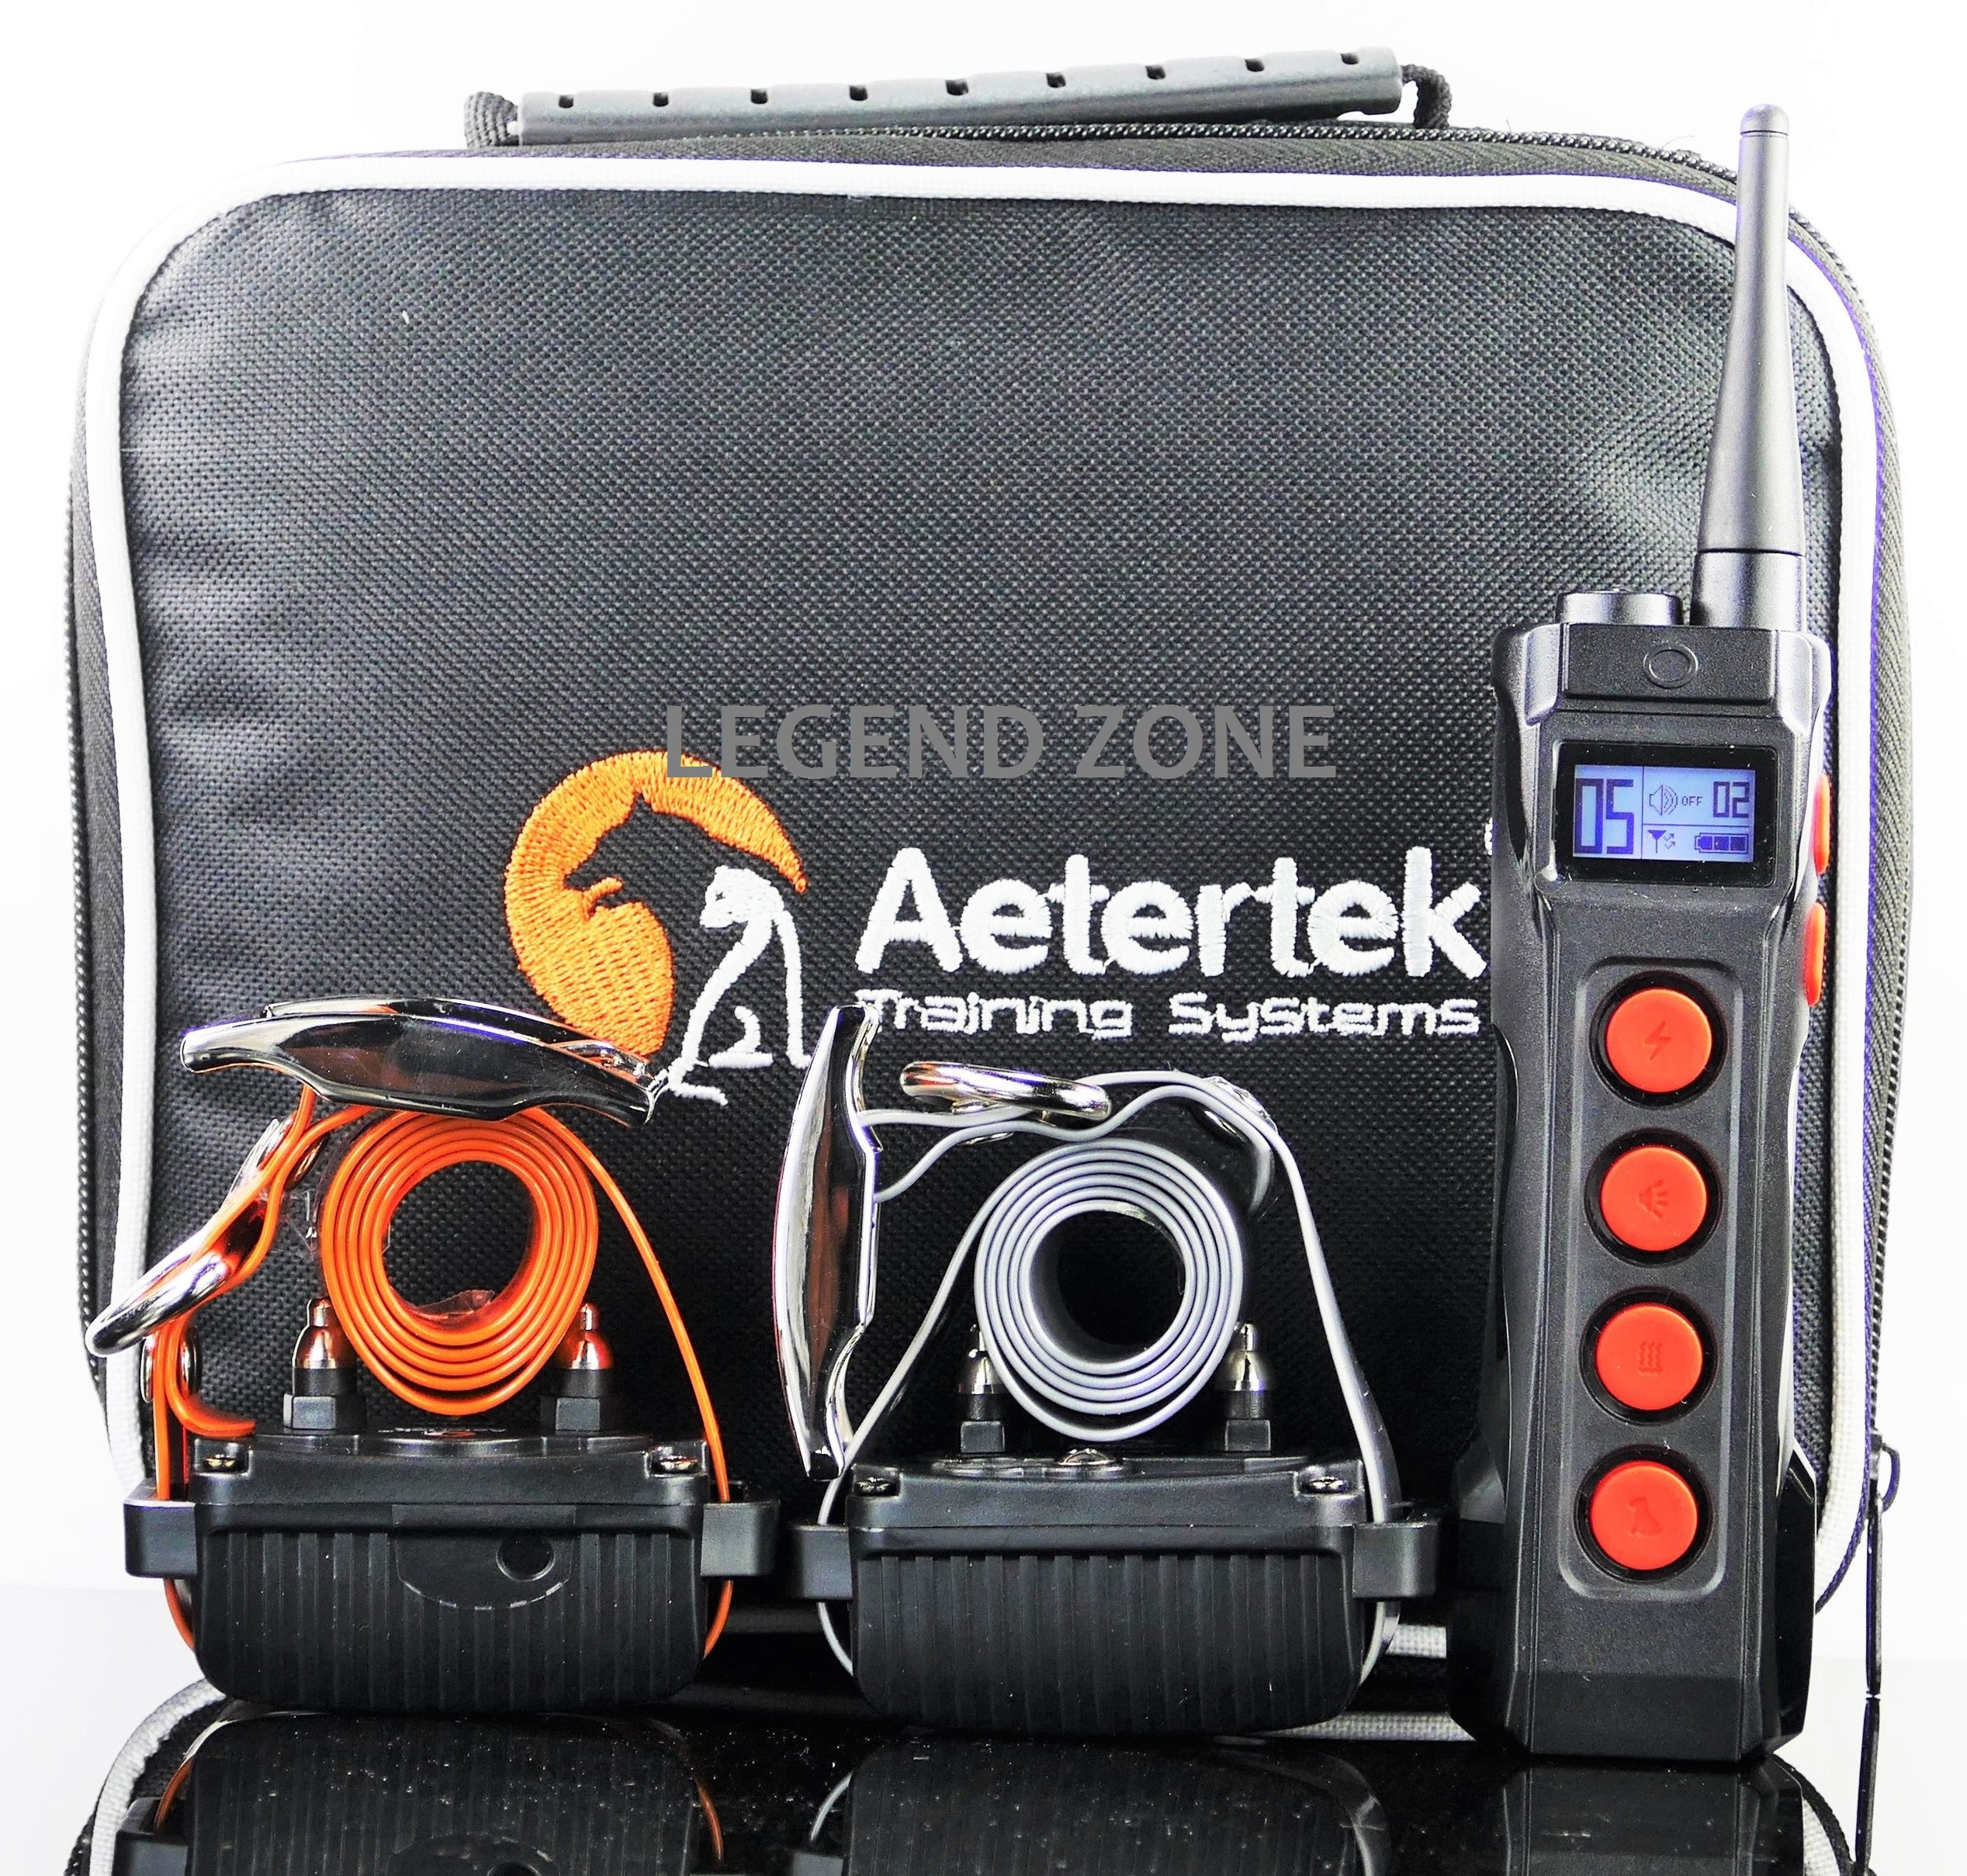 Aetertek AT-919C 2-DOG 1100 YARD ULTRA RANGE REMOTE TRAINING SHOCK COLLAR WITH AUTO ANTI-BARK,RECHARGEABLE AND WATERPROOF by Aetertek